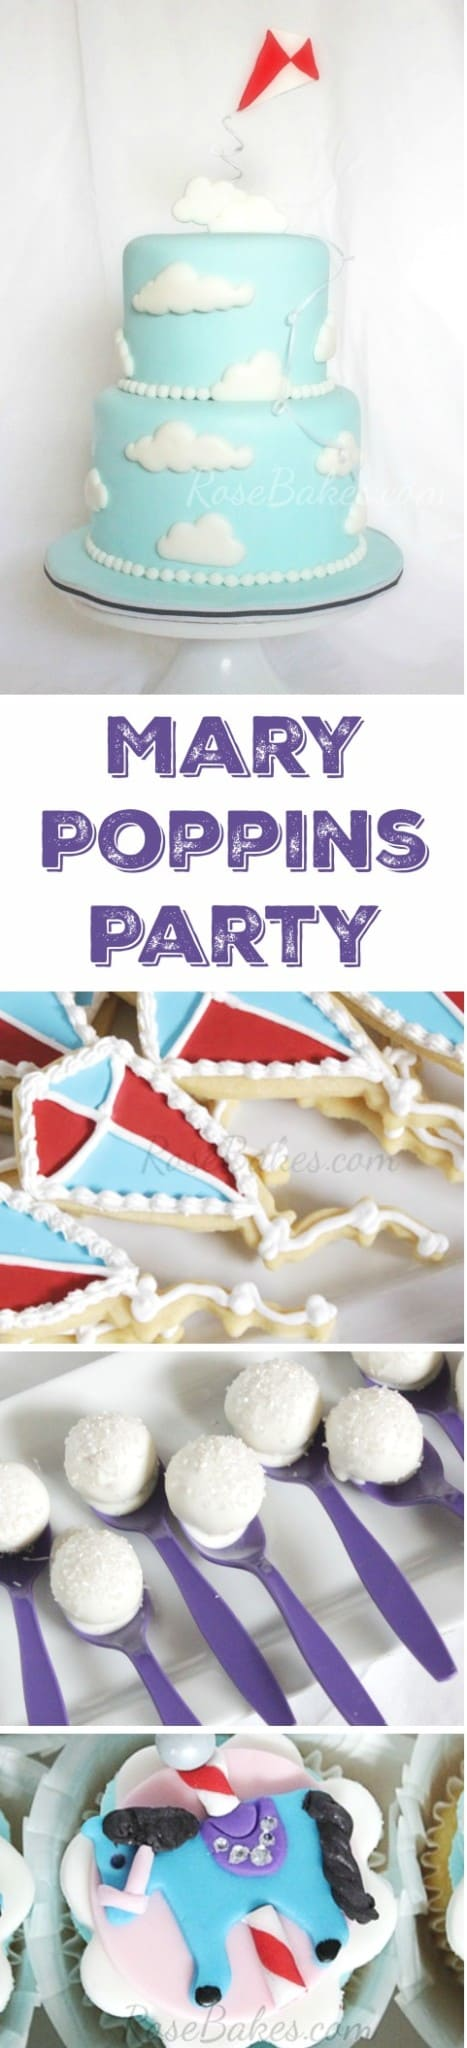 Mary Poppins Party Cake Cookies Cupcakes Cake Pops